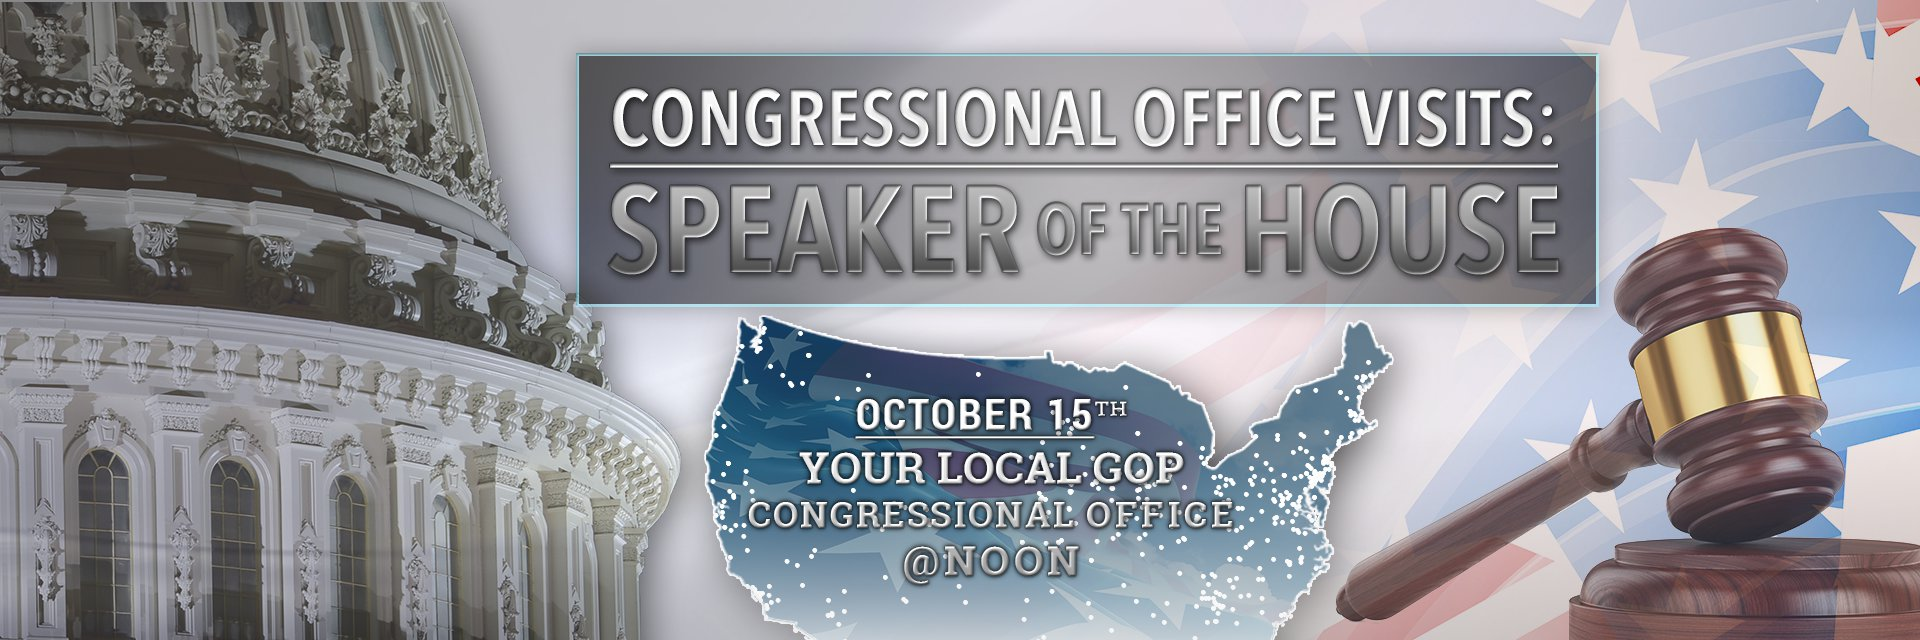 Speaker-of-the-house-rally-october-15